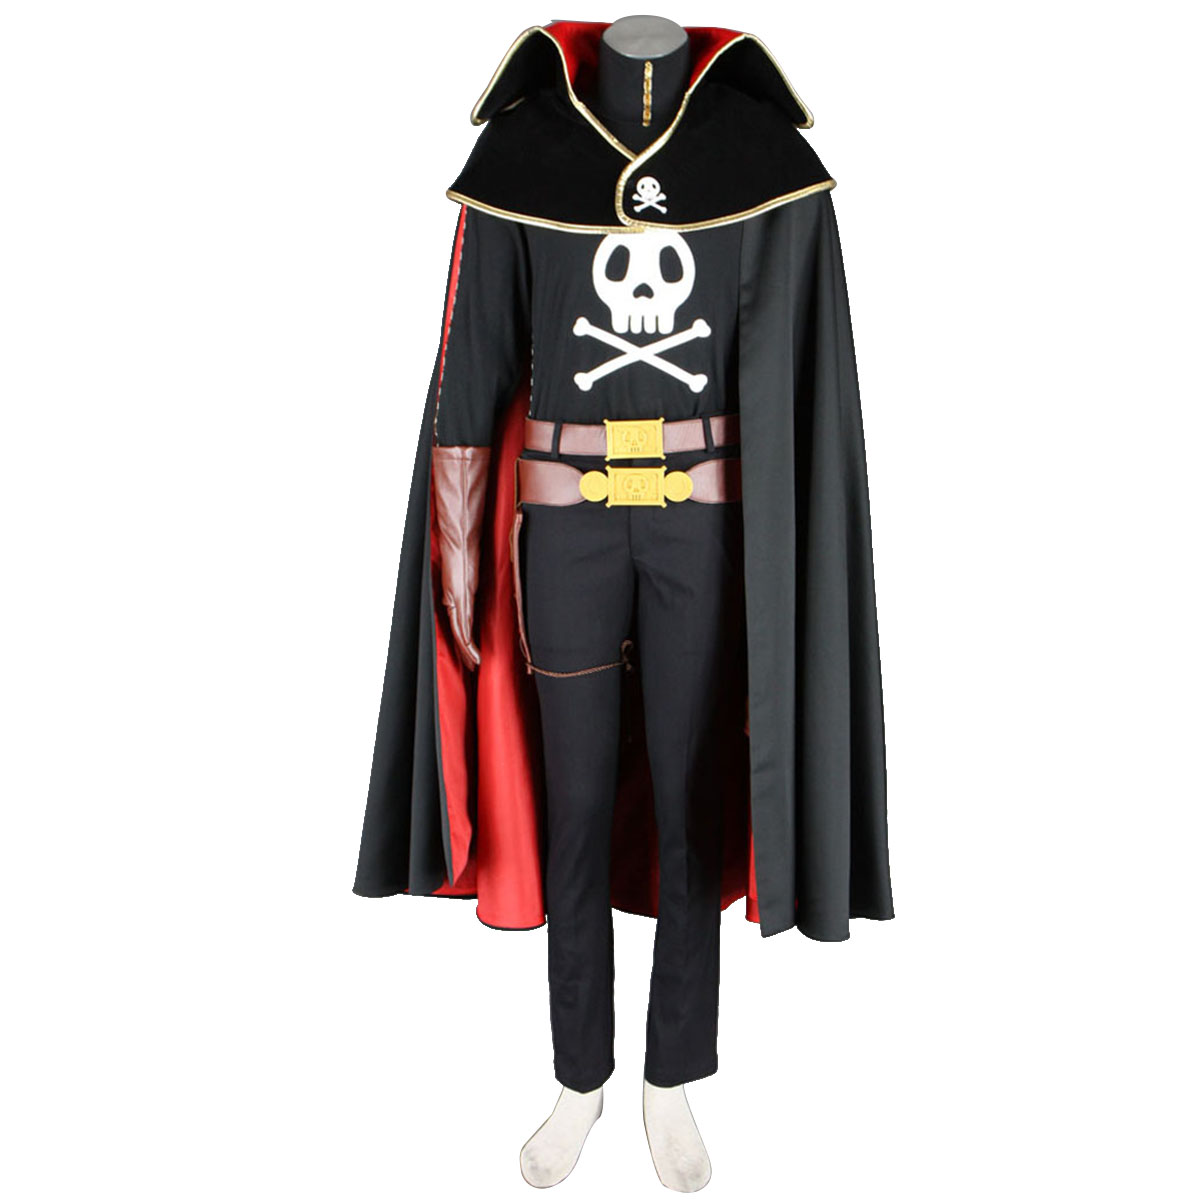 Galaxy Express 999 Captain Harlock Cosplay Kostym Sverige